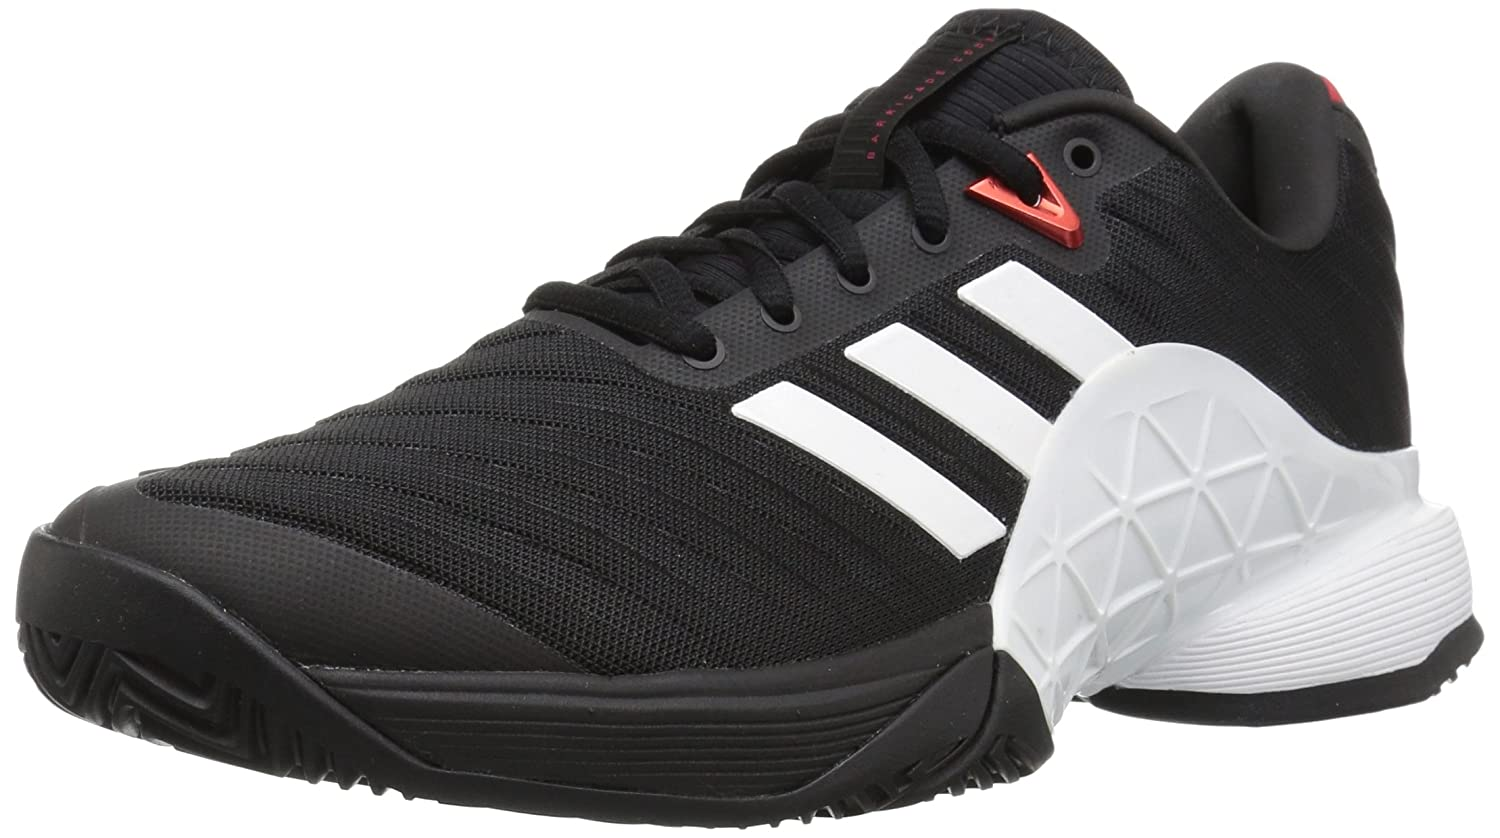 Hot Sales Adidas Barricade Boost 2016 Court Shoes Mens White